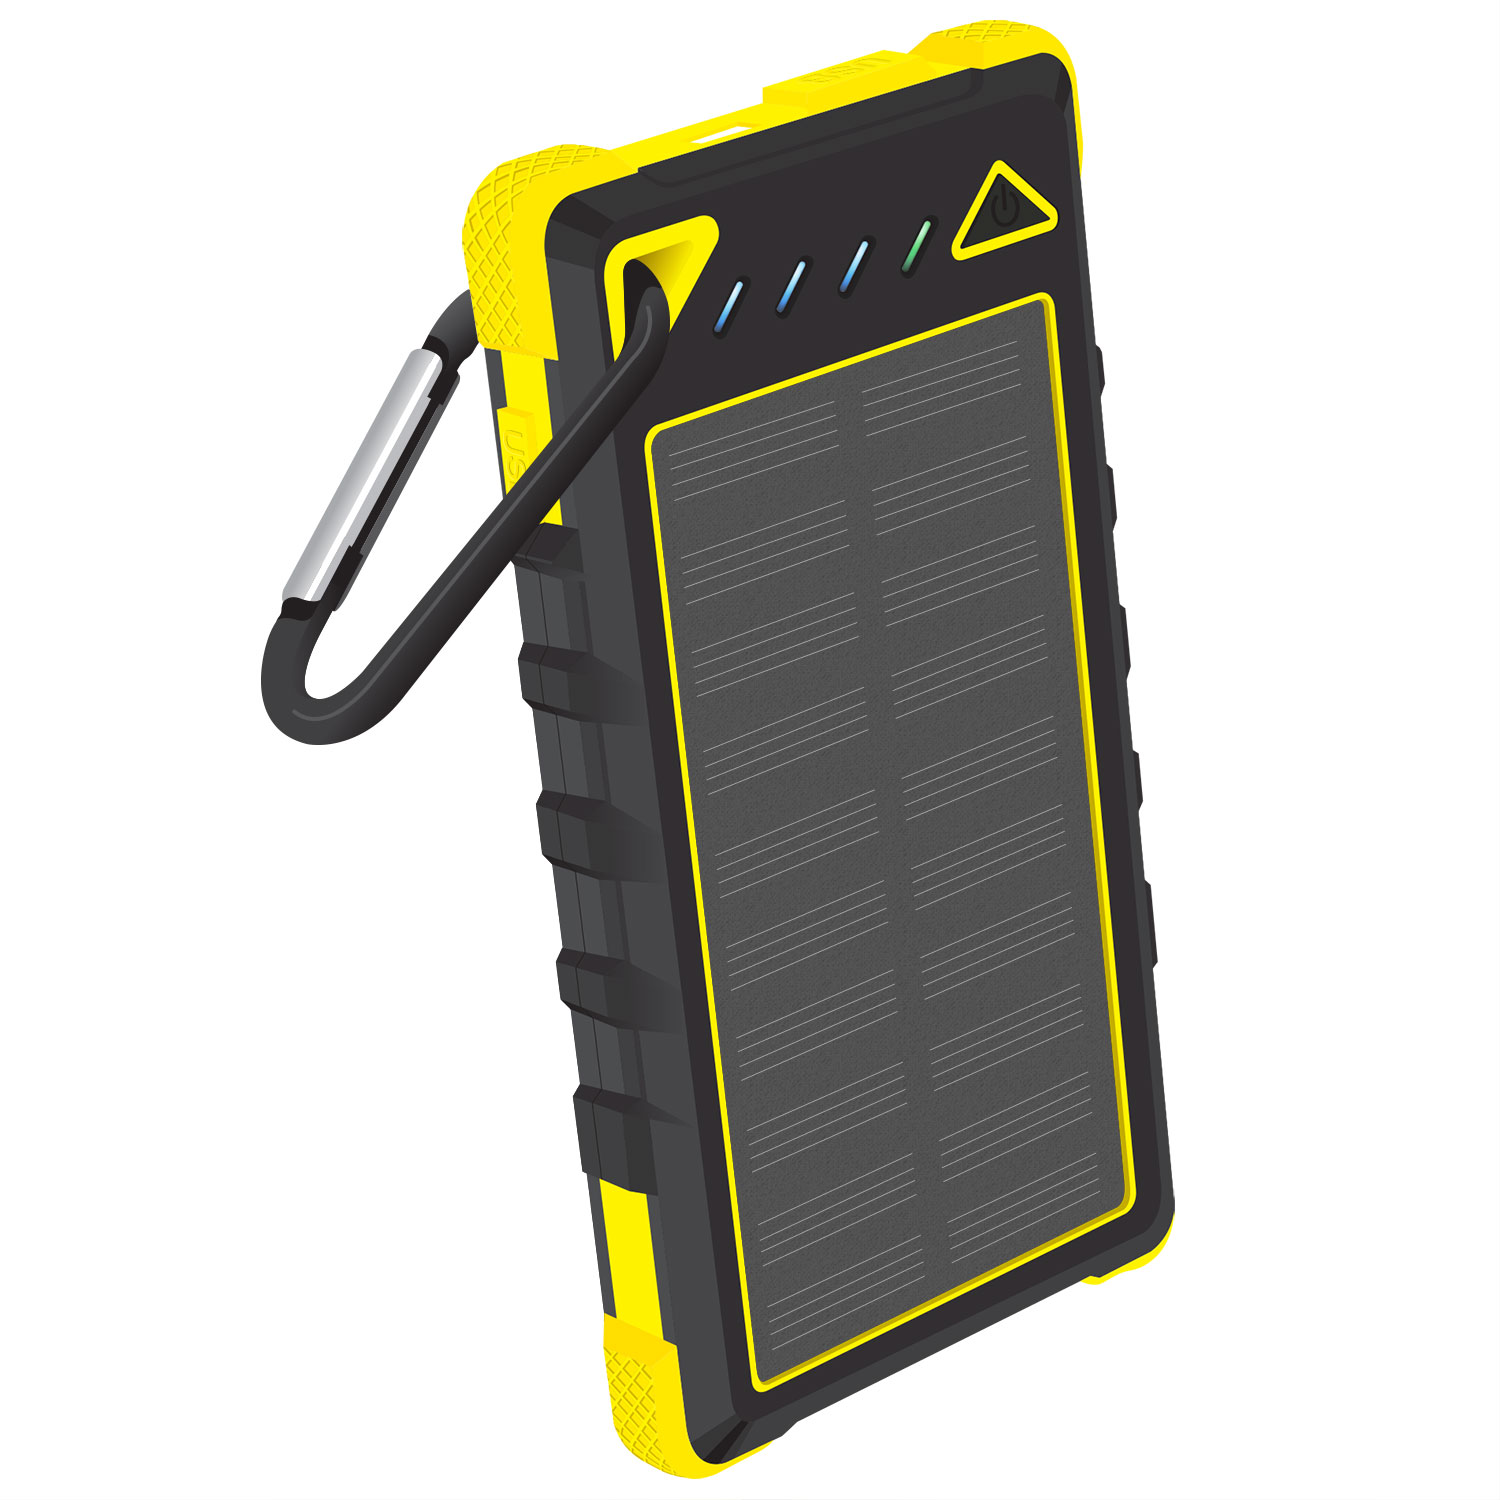 Huawei Honor 5X Solar Powered Portable PowerBank Yellow